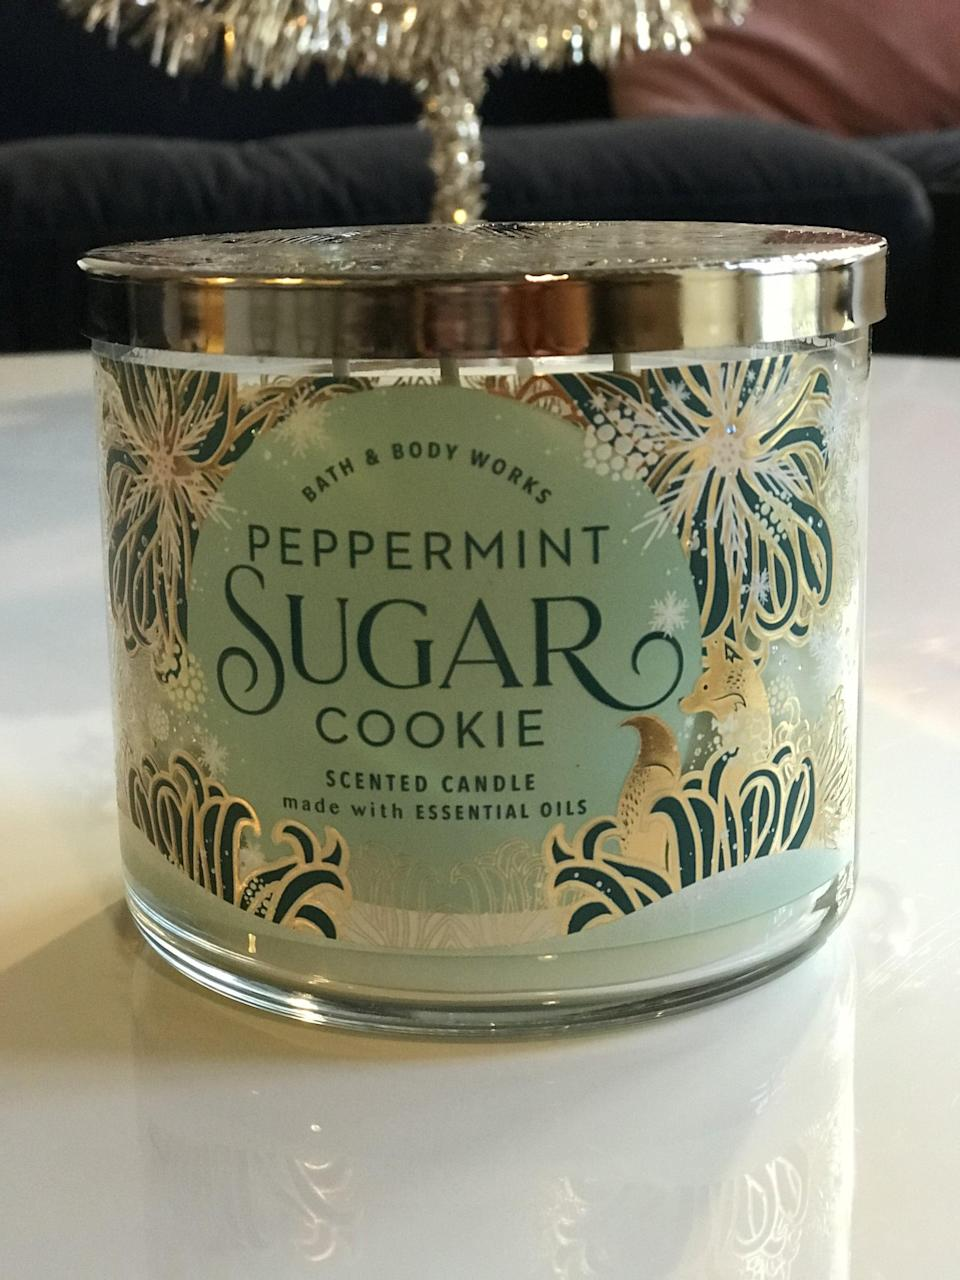 <p>Peppermint Sugar Cookie 3-Wick Candle ($15, originally $25, not available online)</p> <p><strong>What It Smells Like:</strong> Exactly as the title says, minty-fresh cookies.</p>